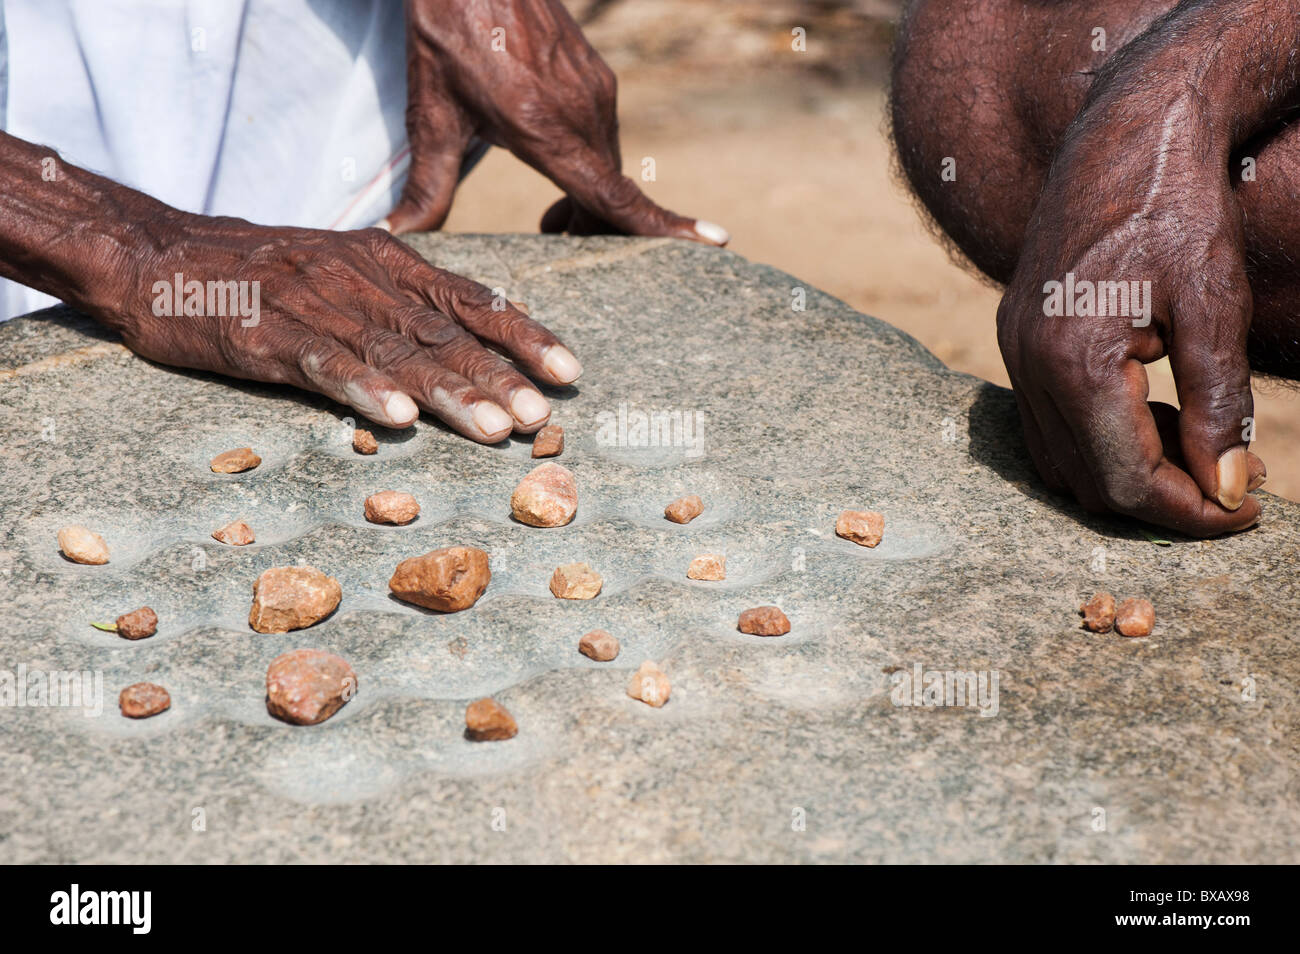 Old game like draughts played with stones by indian men in a rural indian village. Andhra Pradesh, India - Stock Image